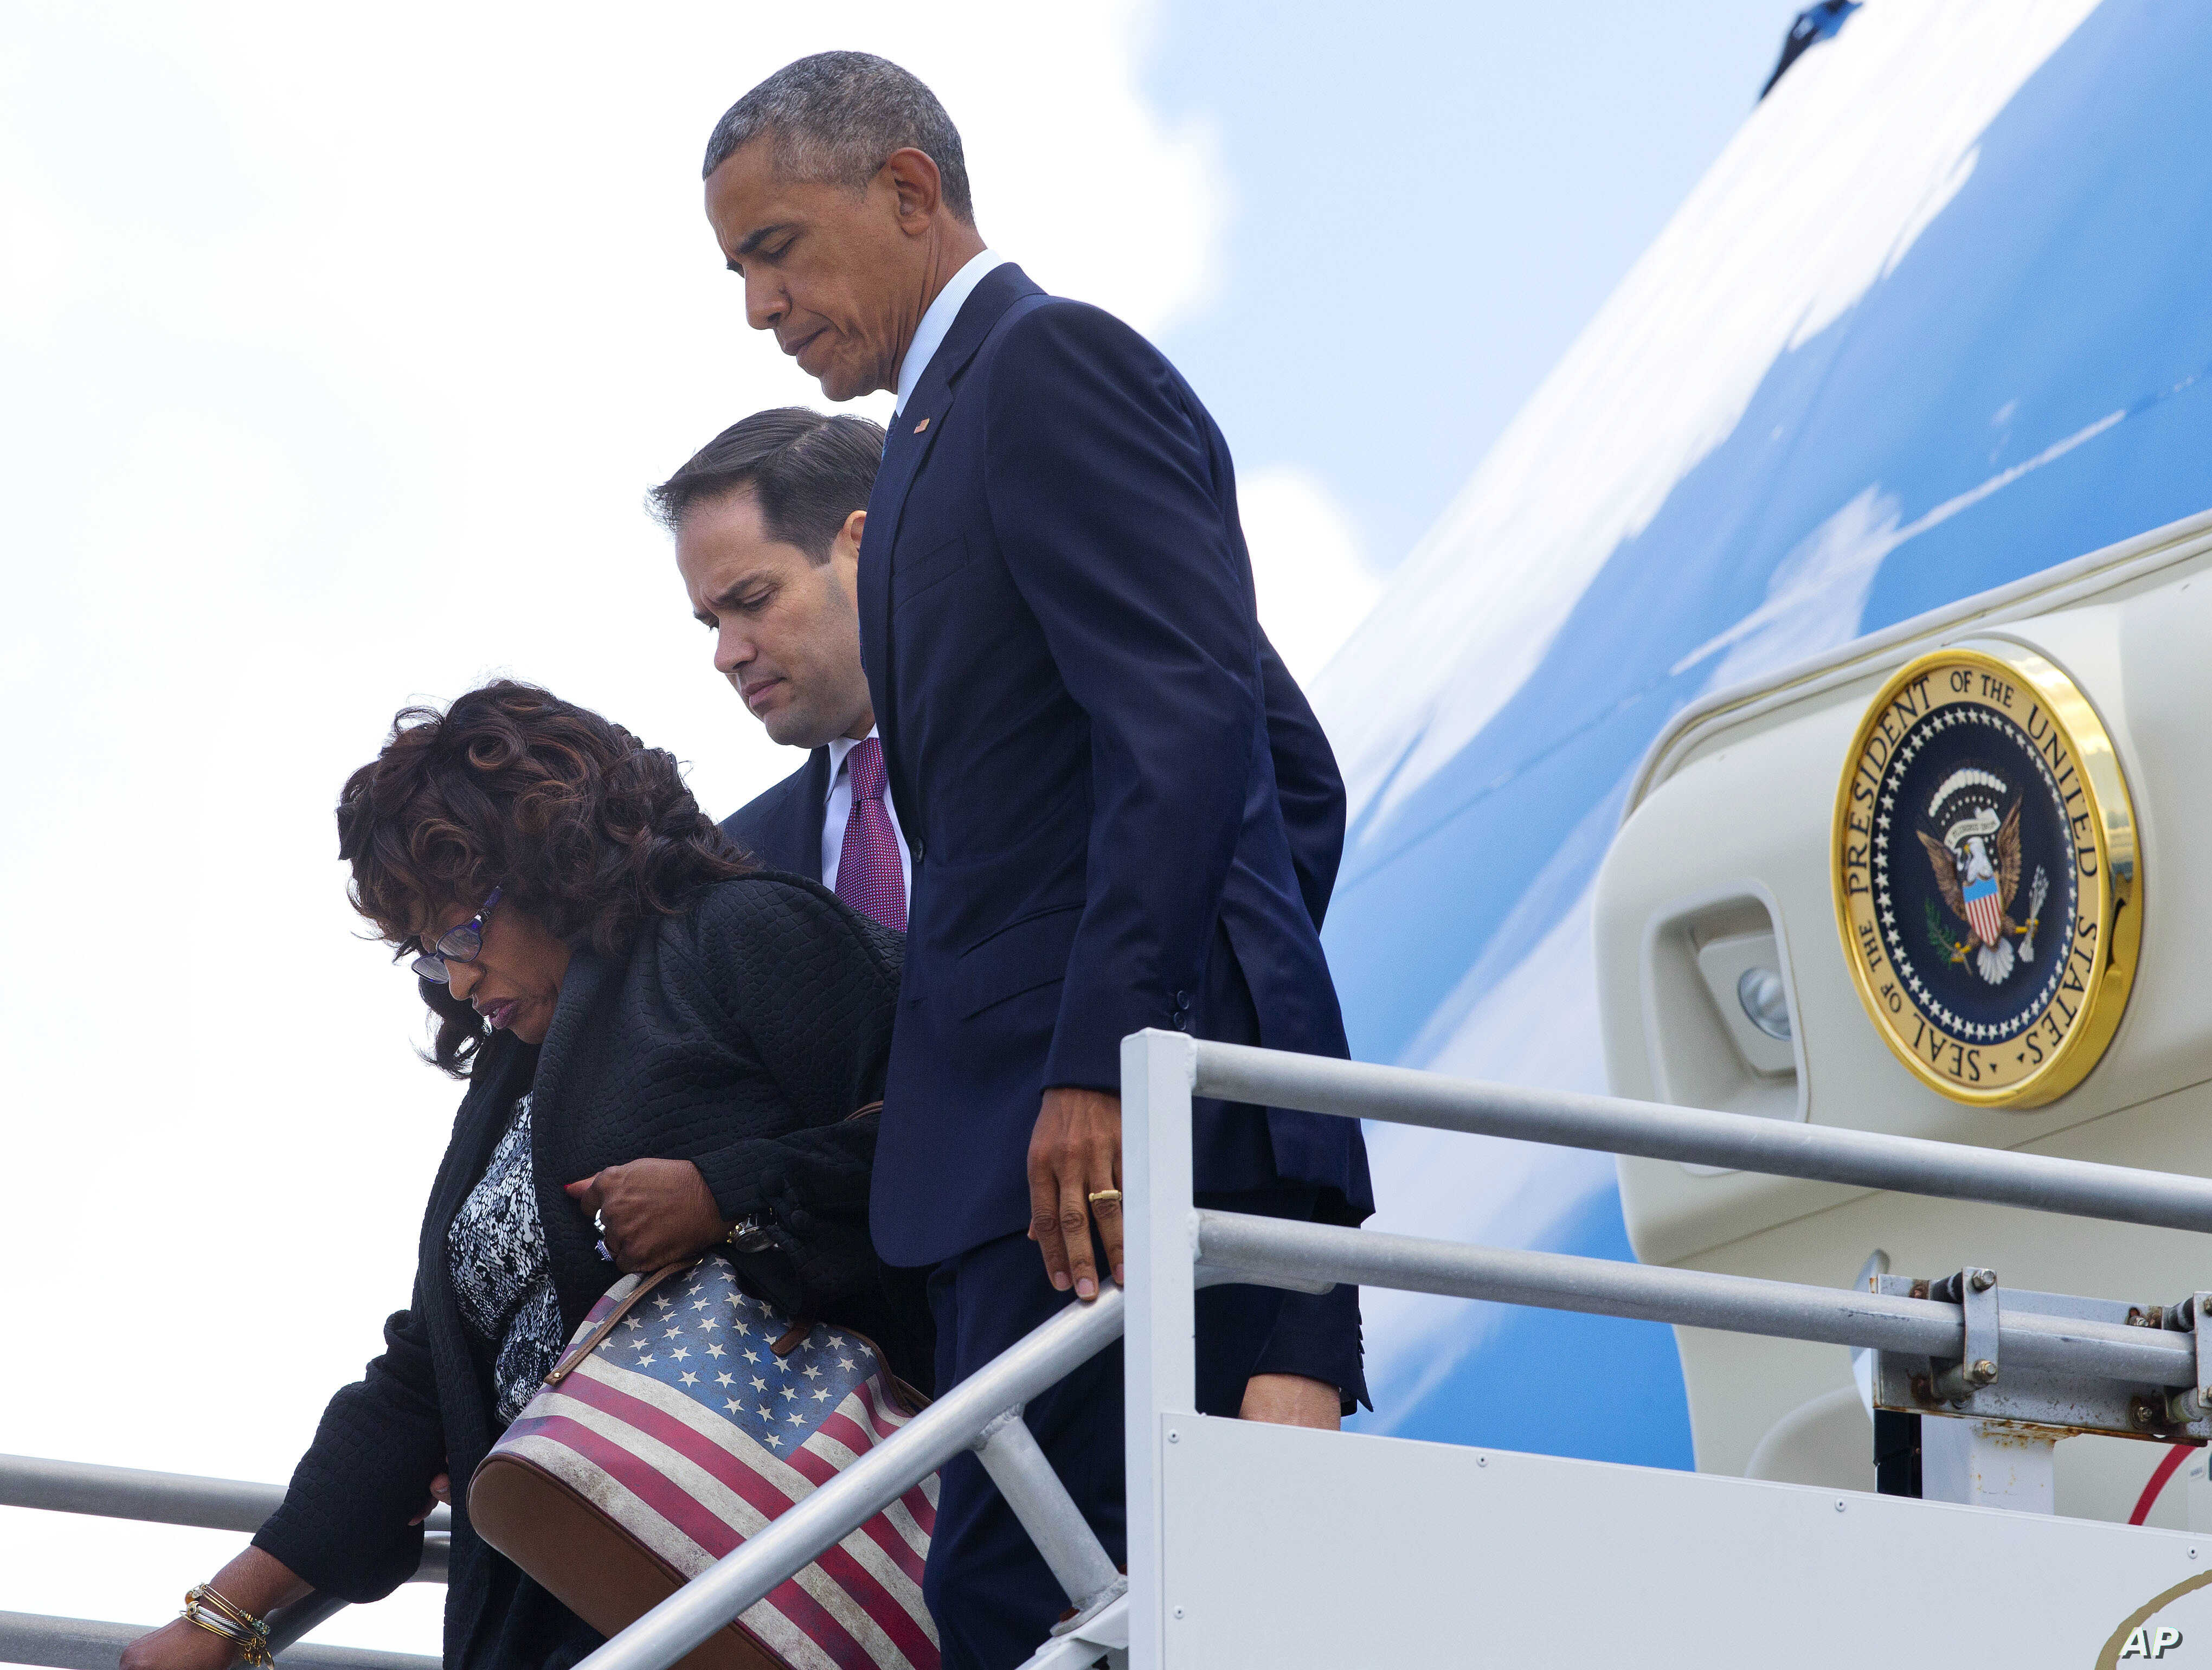 President Barack Obama, with Rep. Corrine Brown, D-Fla., left, and Sen. Marco Rubio, R-Fla.,center, get off Air Force One upon their arrival at Orlando International Airport, June 16, 2016, in Orlando, Fla.